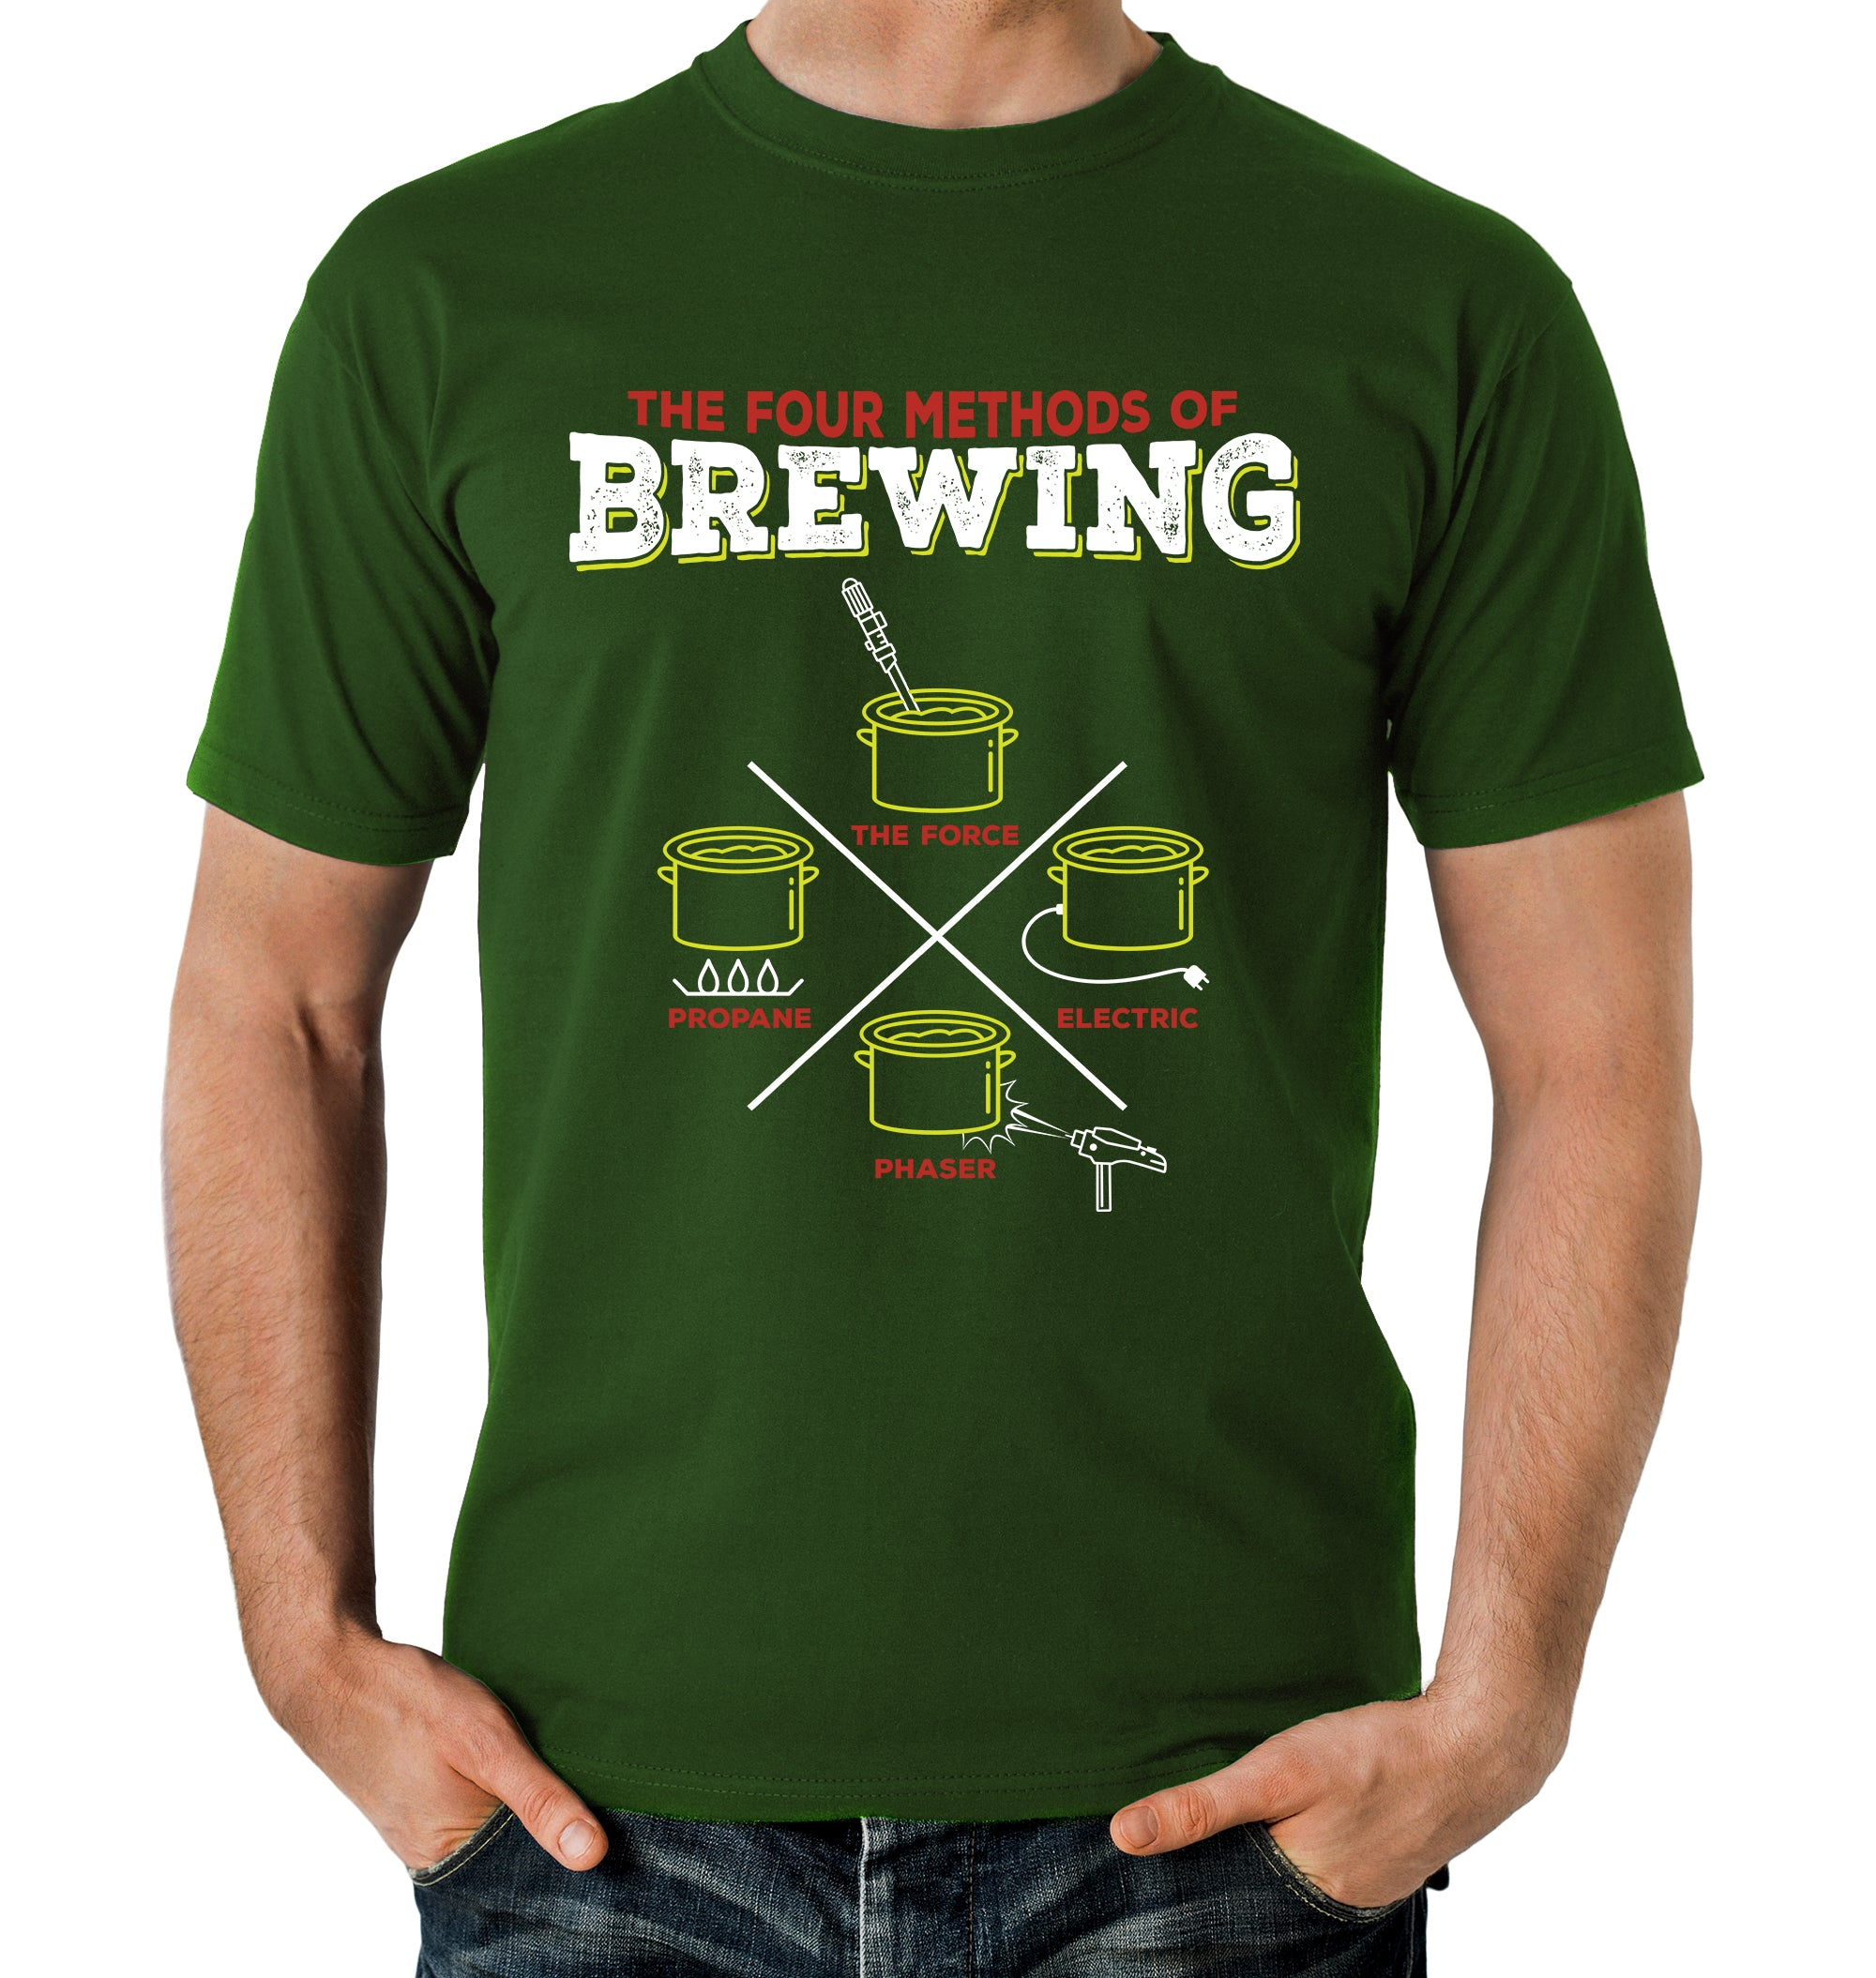 4 Methods of Brewing T-Shirt on Model